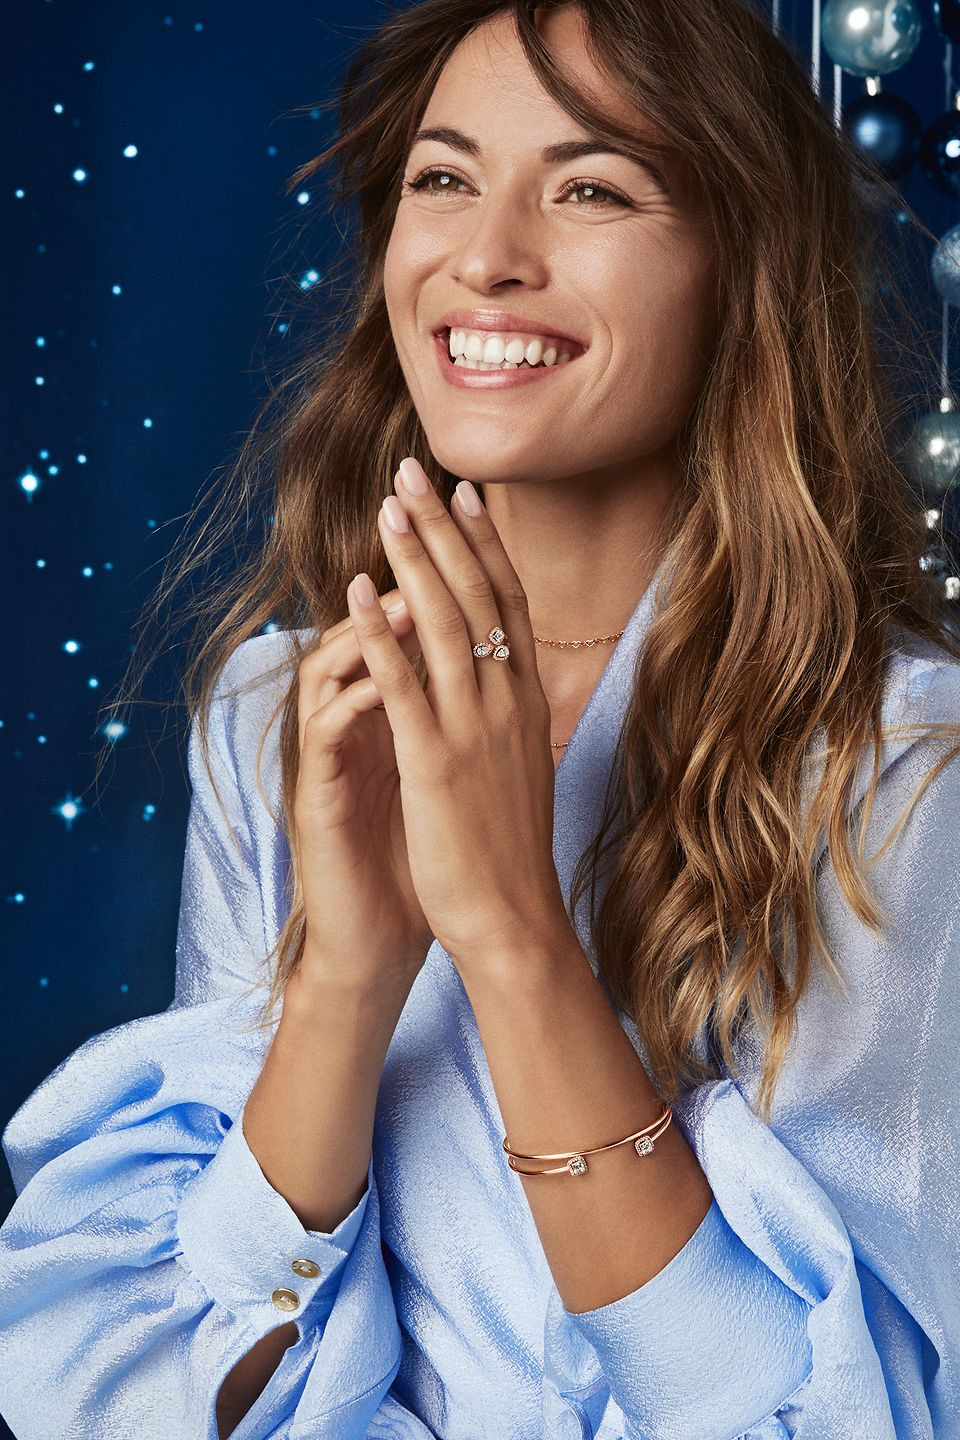 The Timeless Elegance collection in Pandora Rose features stackable open designs, raised stones and is perfect for Christmas gifting.